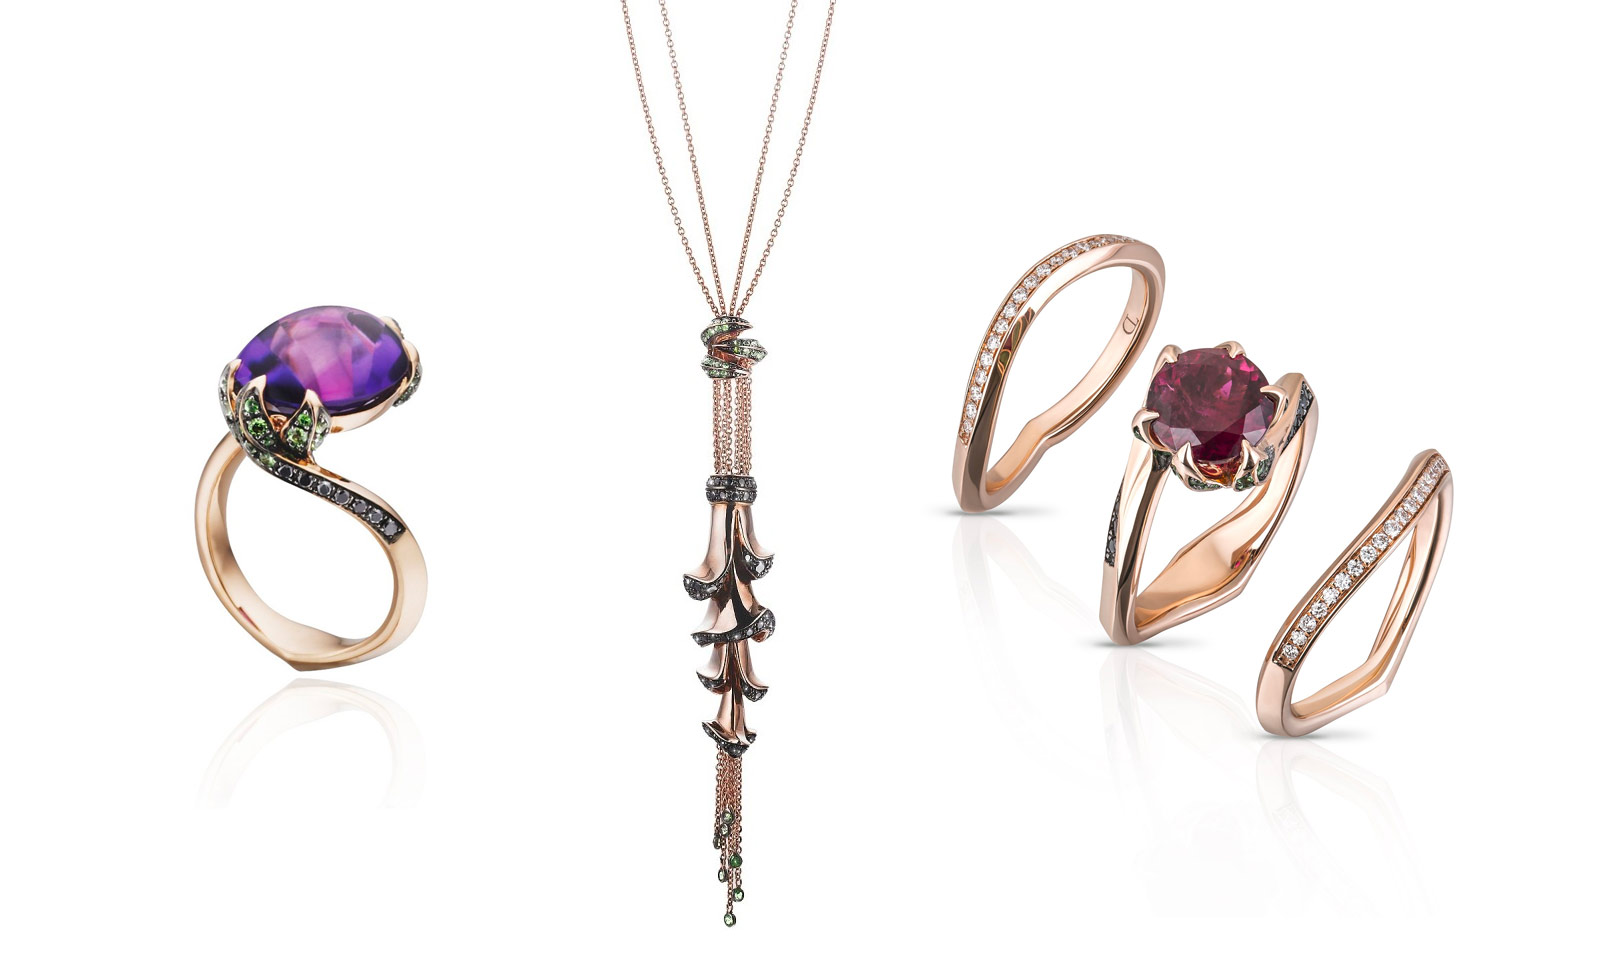 Tomasz Donocik 'Garden of Good & Evil' rings and pendant